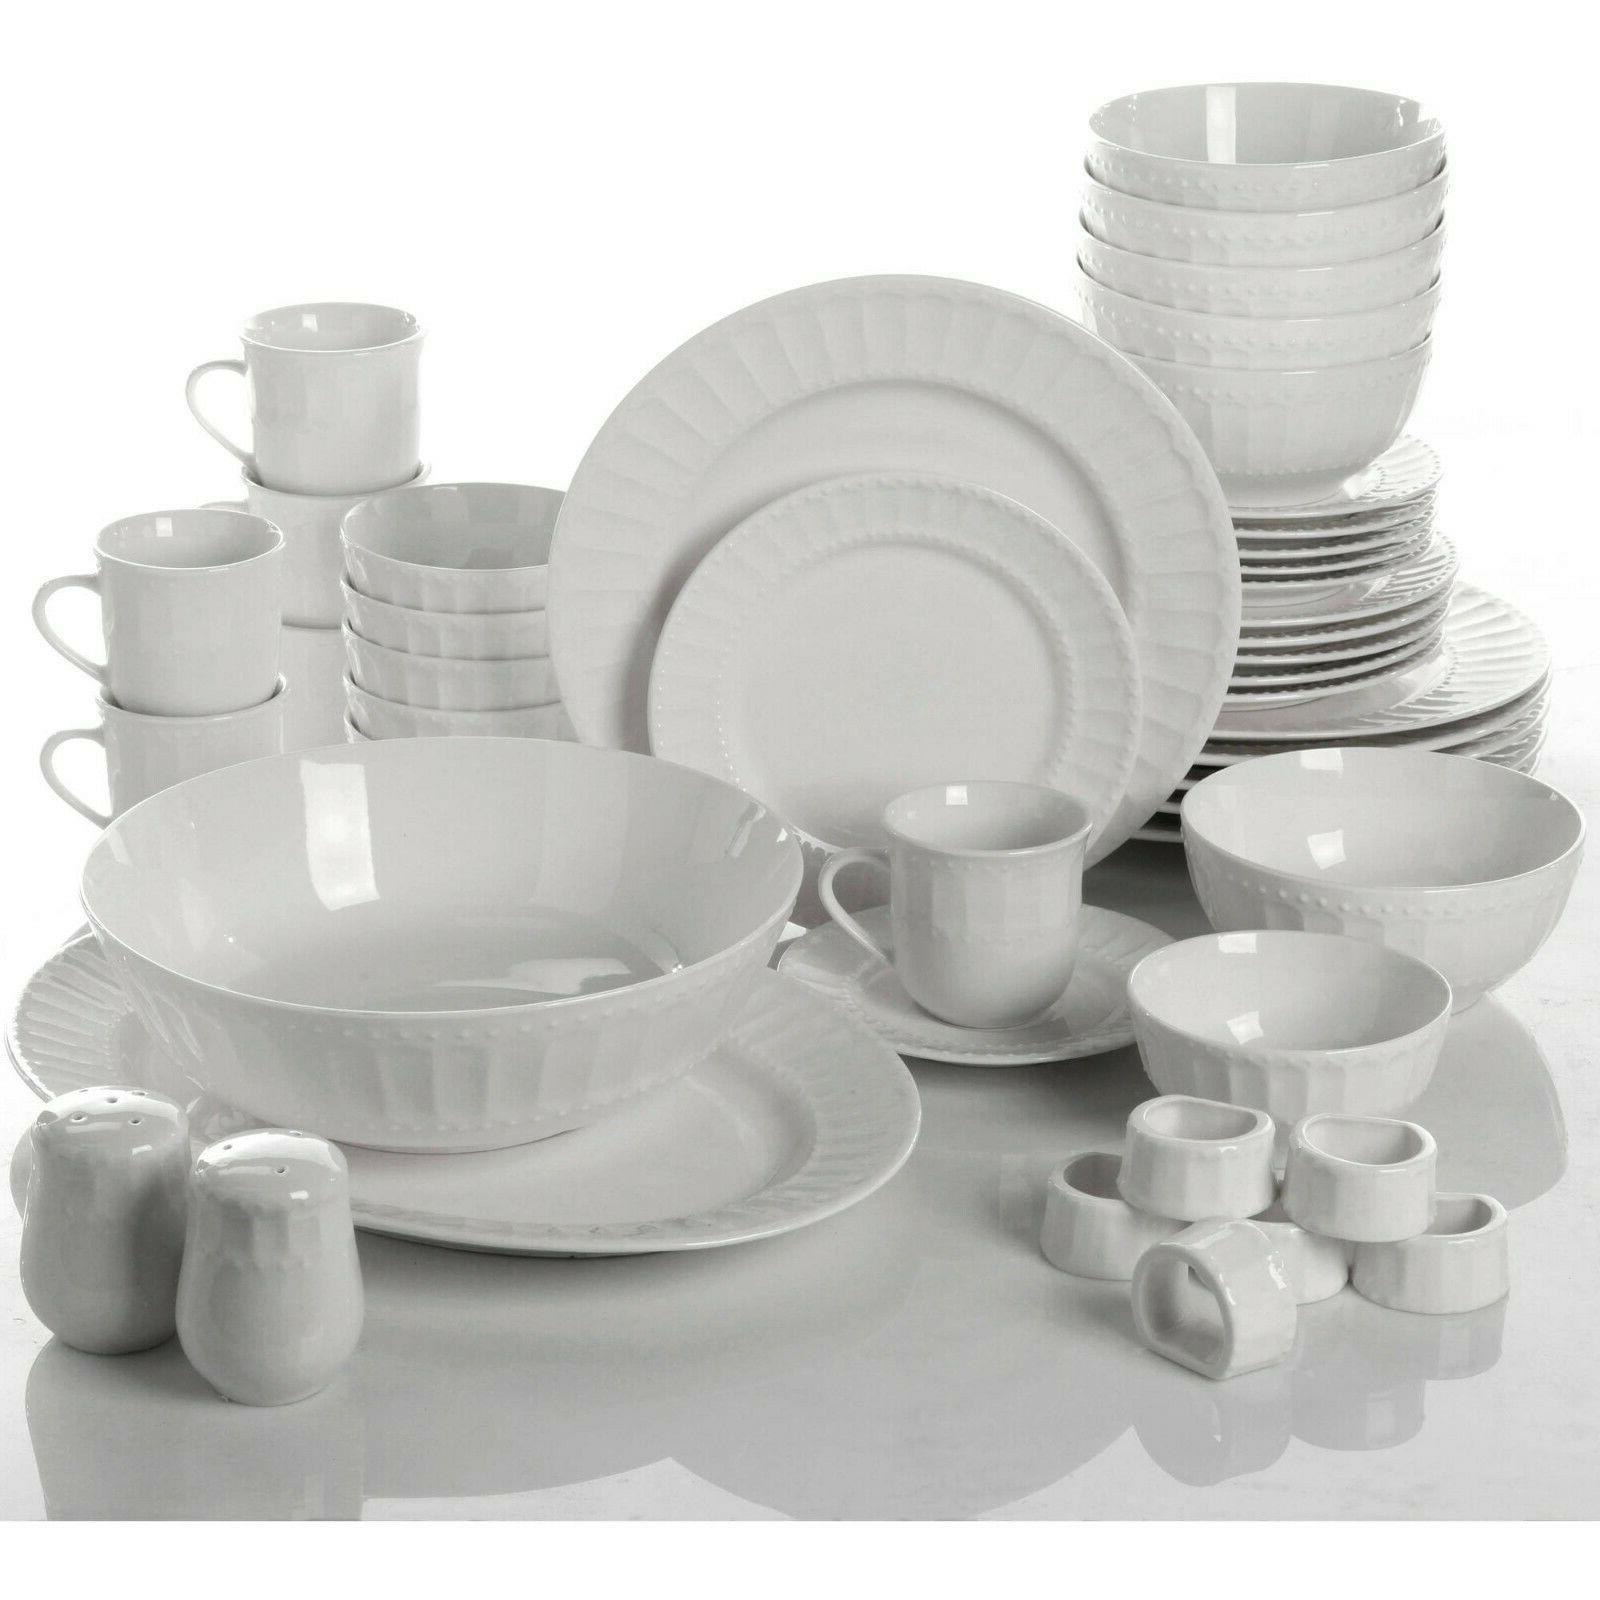 Dinnerware Set 46 Piece Plates Dishes Bowls Kitchen China Se